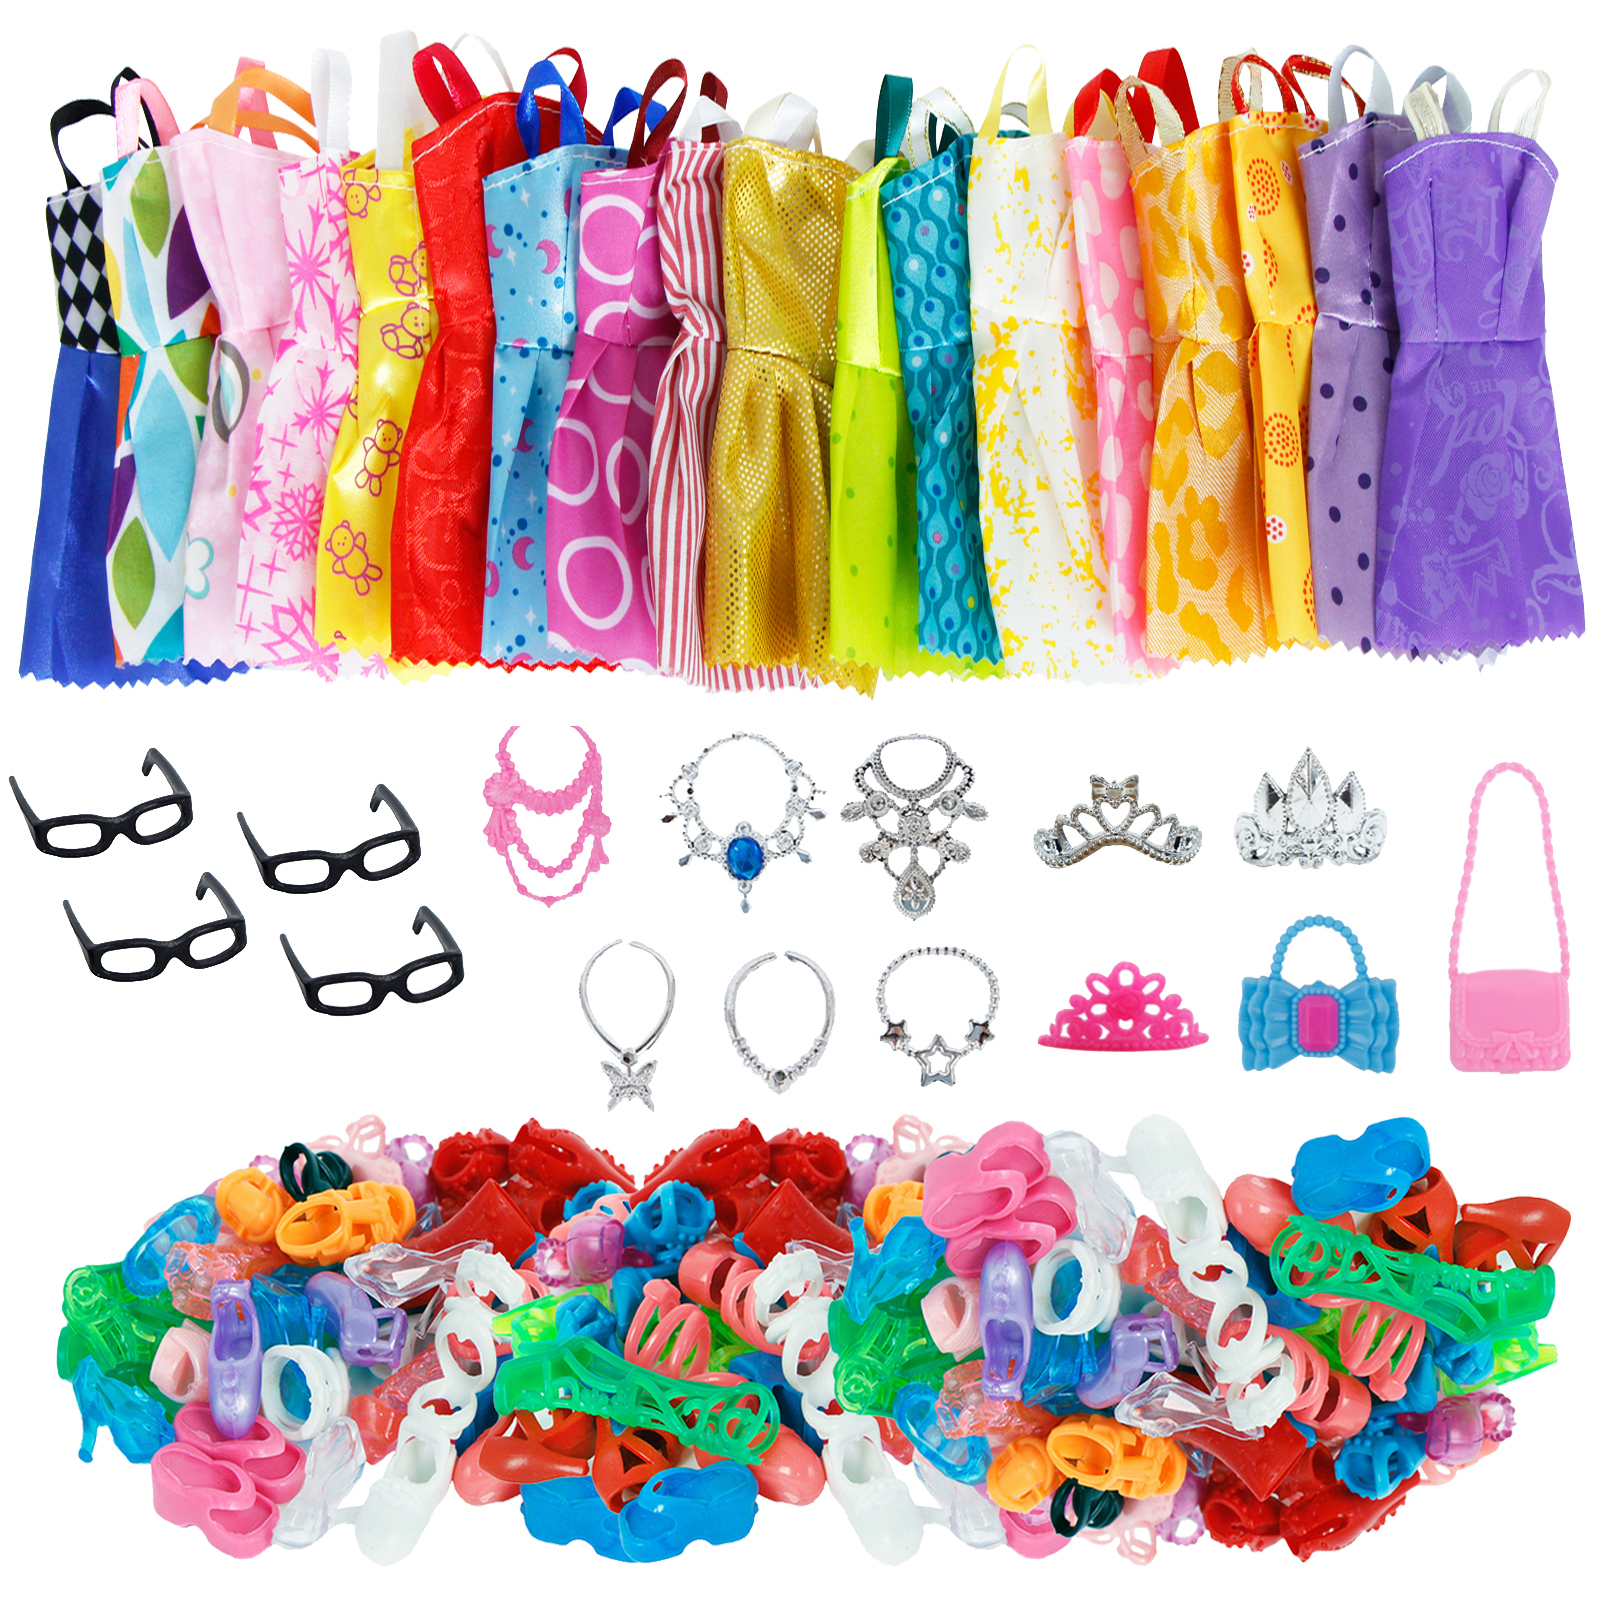 35 Item/Set Doll Accessories = 10 Shoes  + 6 Necklace 4 Glasses 3 Crowns 2 Handbags + 10 Pcs Doll Clothes Dress For Barbie Doll(China)